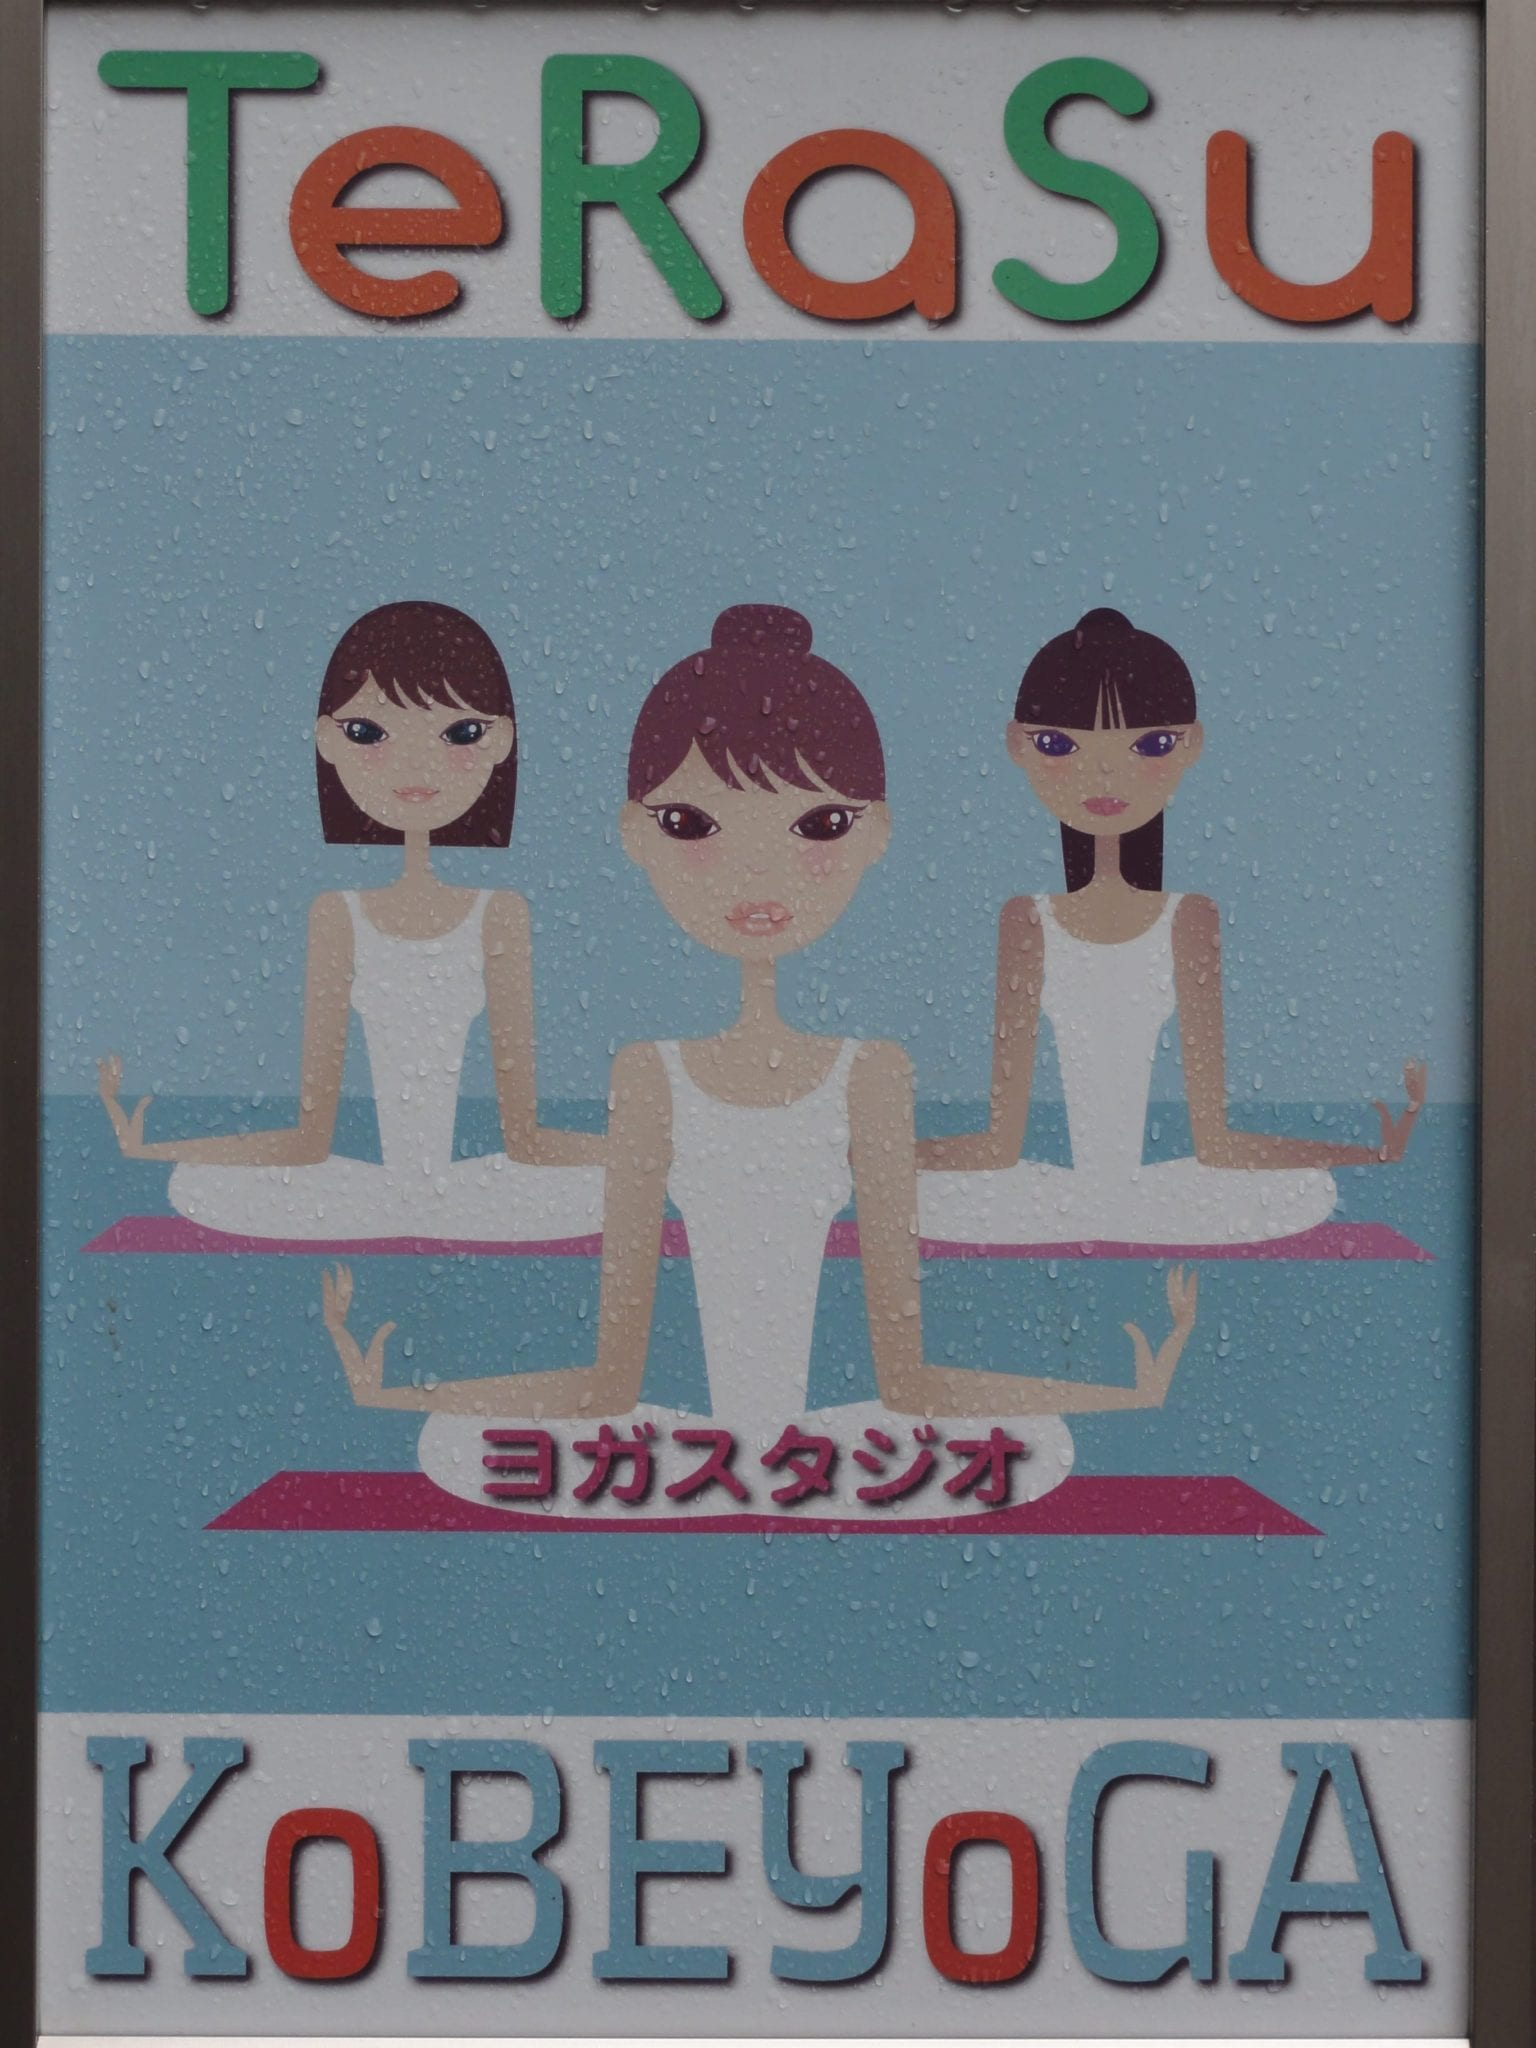 Yoga studio's sign in katakana Japanese alphabet